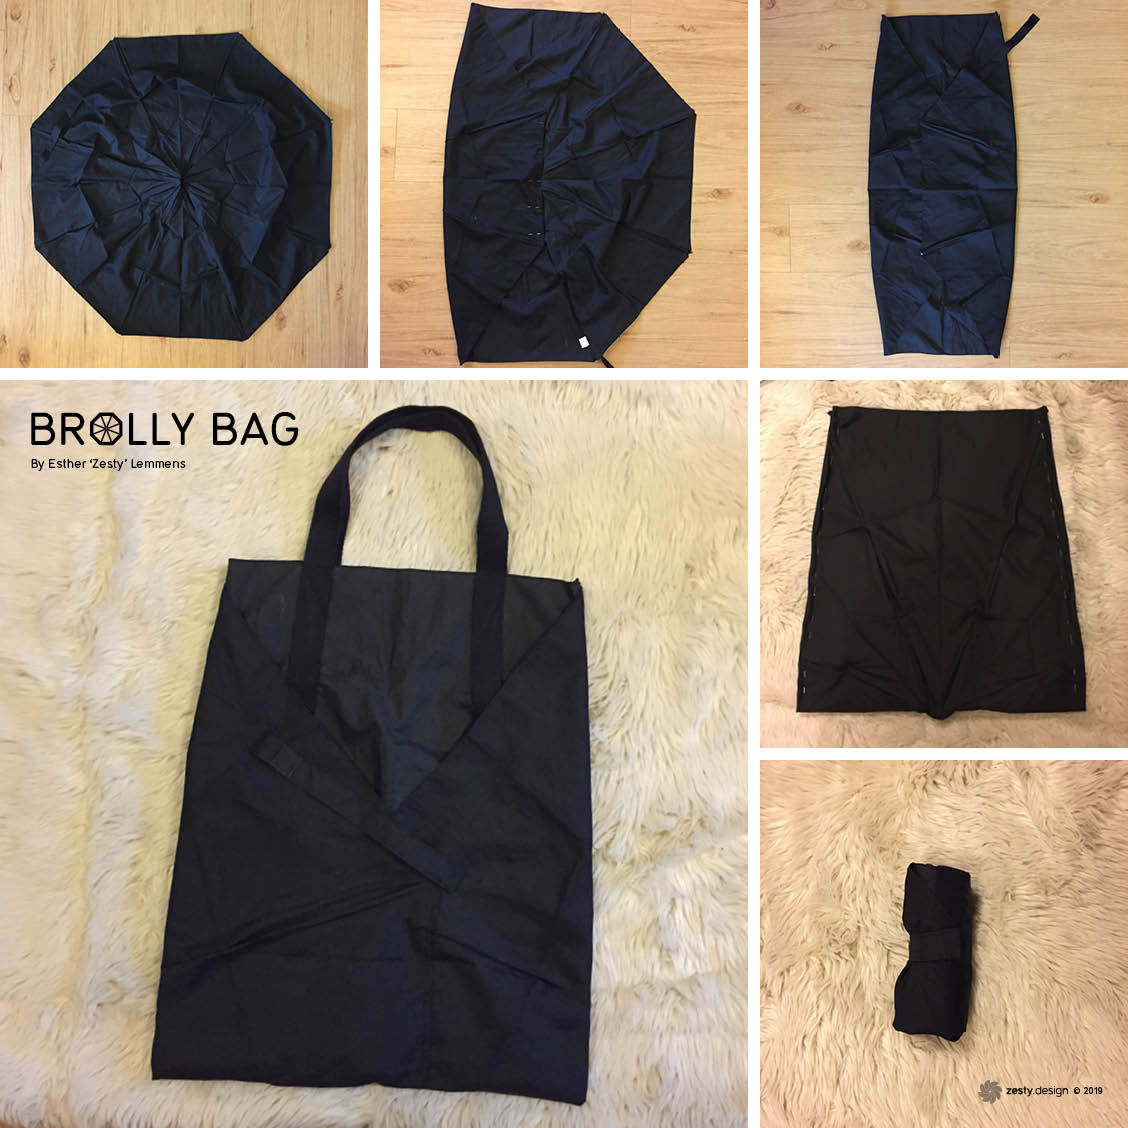 Umbrella bag (brolly bag) collage of images at different stages